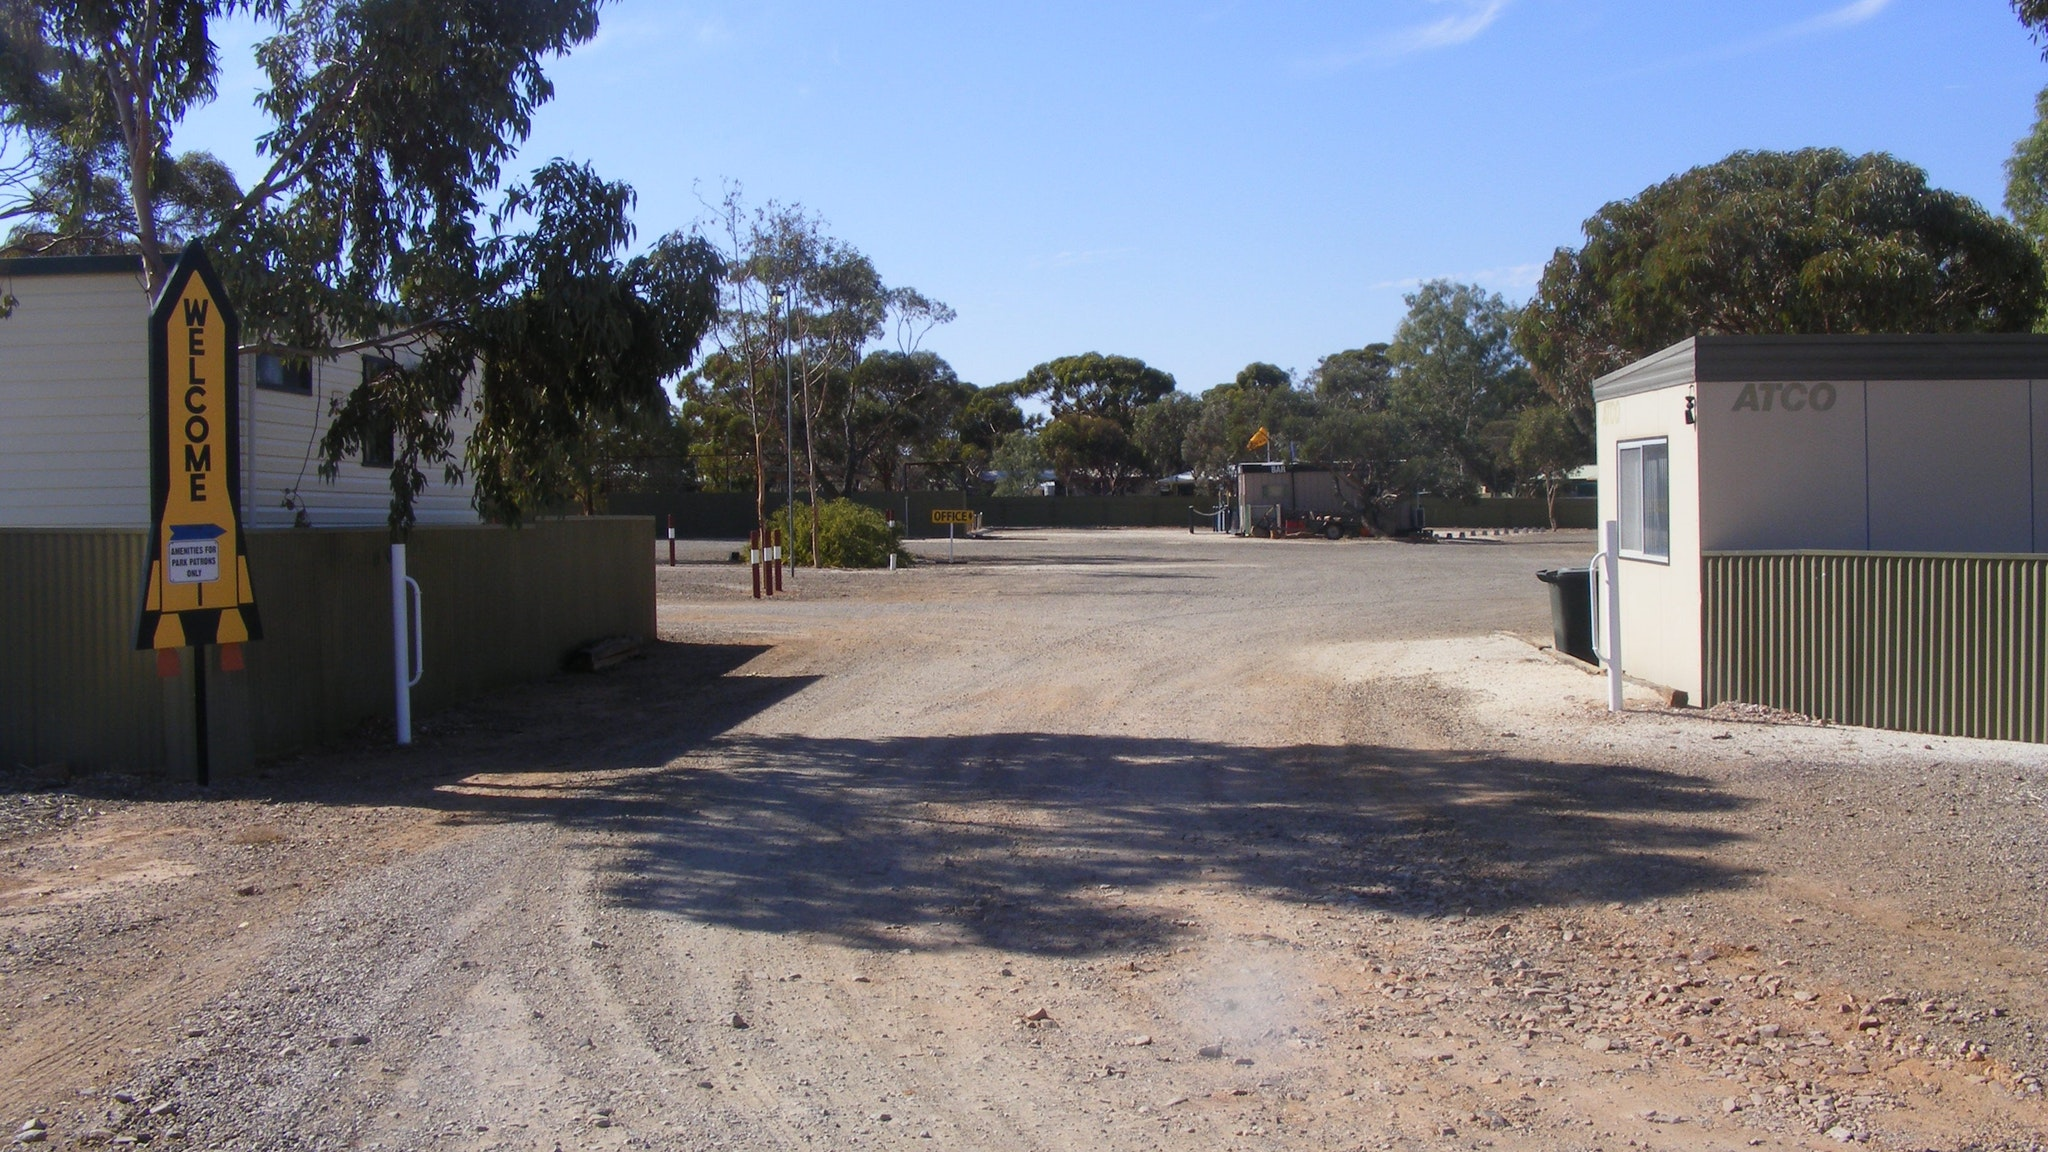 Woomera Travellers Village and Caravan Park - South Australia Travel